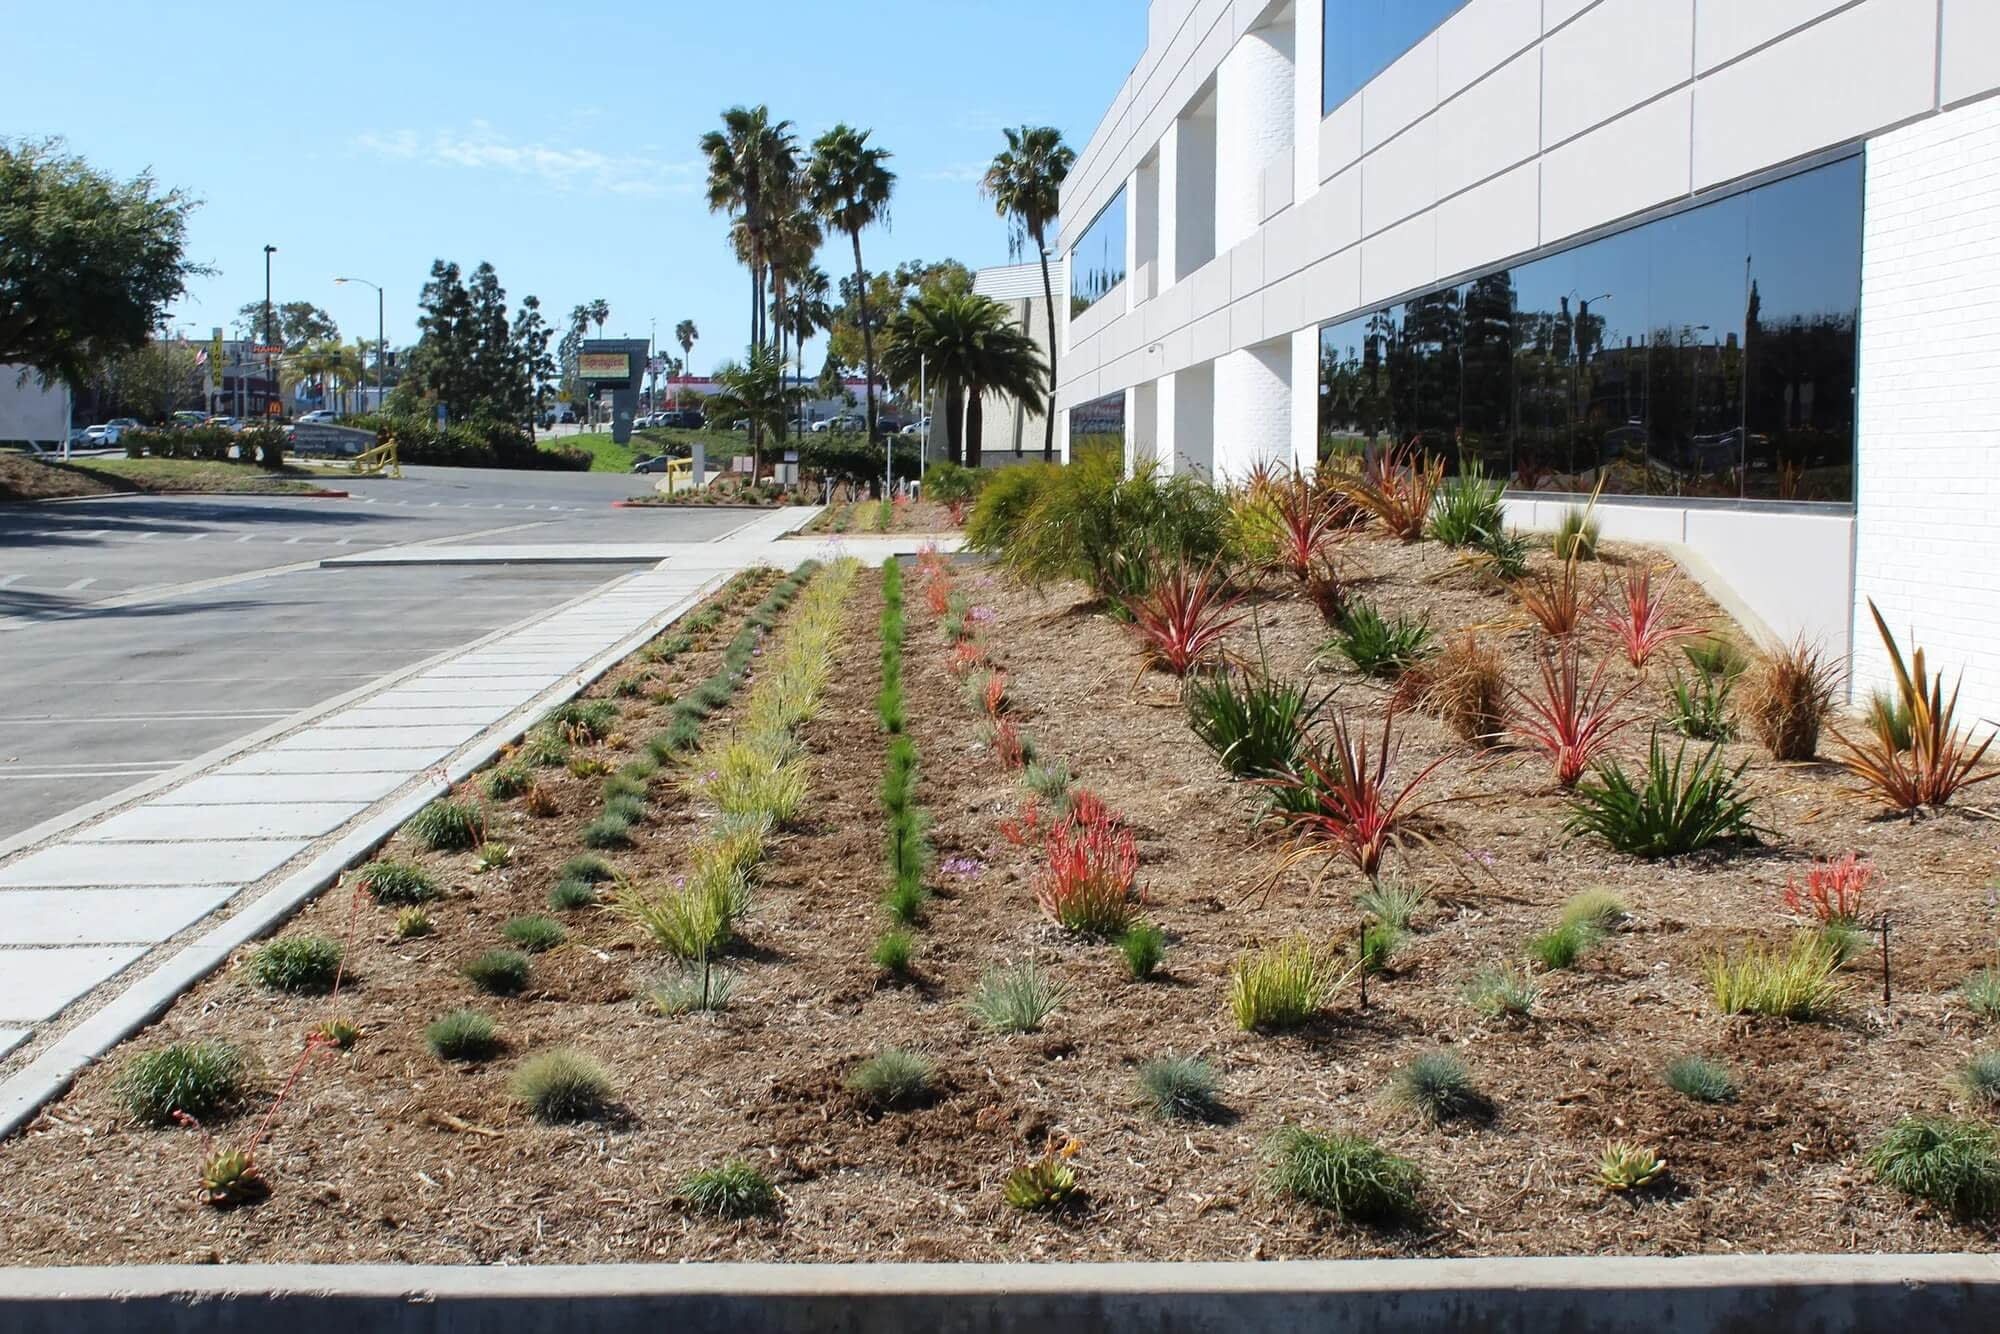 a large section of nicely organized plants between a parking lot and a corporate building